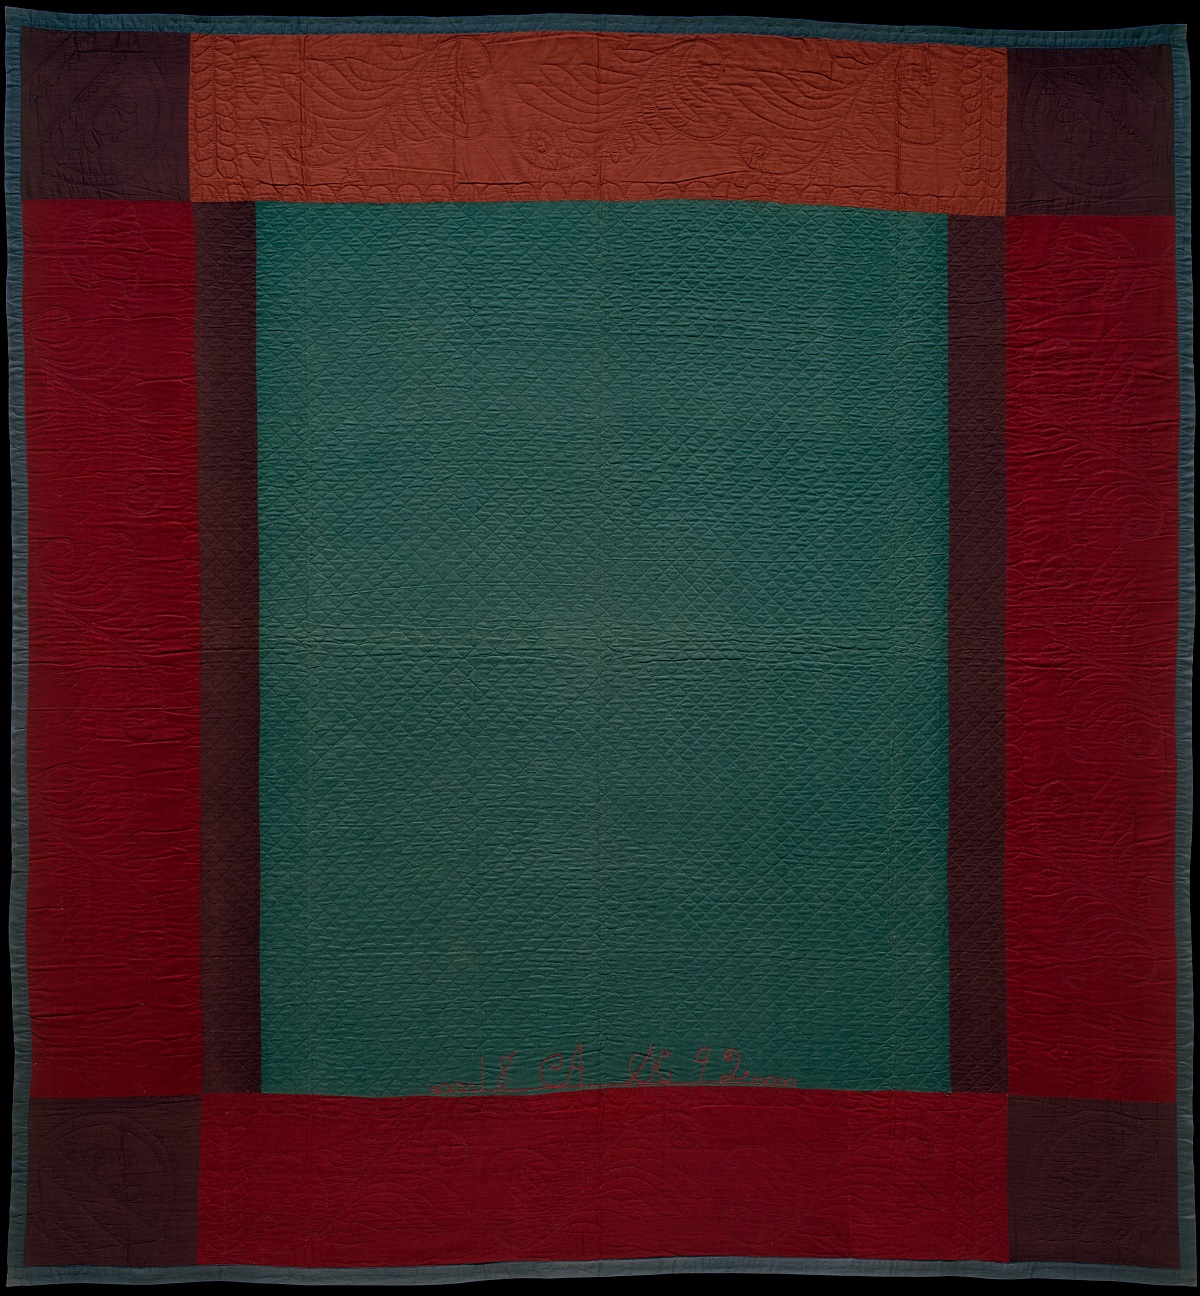 An Amish quilt made in Lancaster County, Pa., dating from 1892 and in the collection of the Metropolitan Museum of Art, New York.